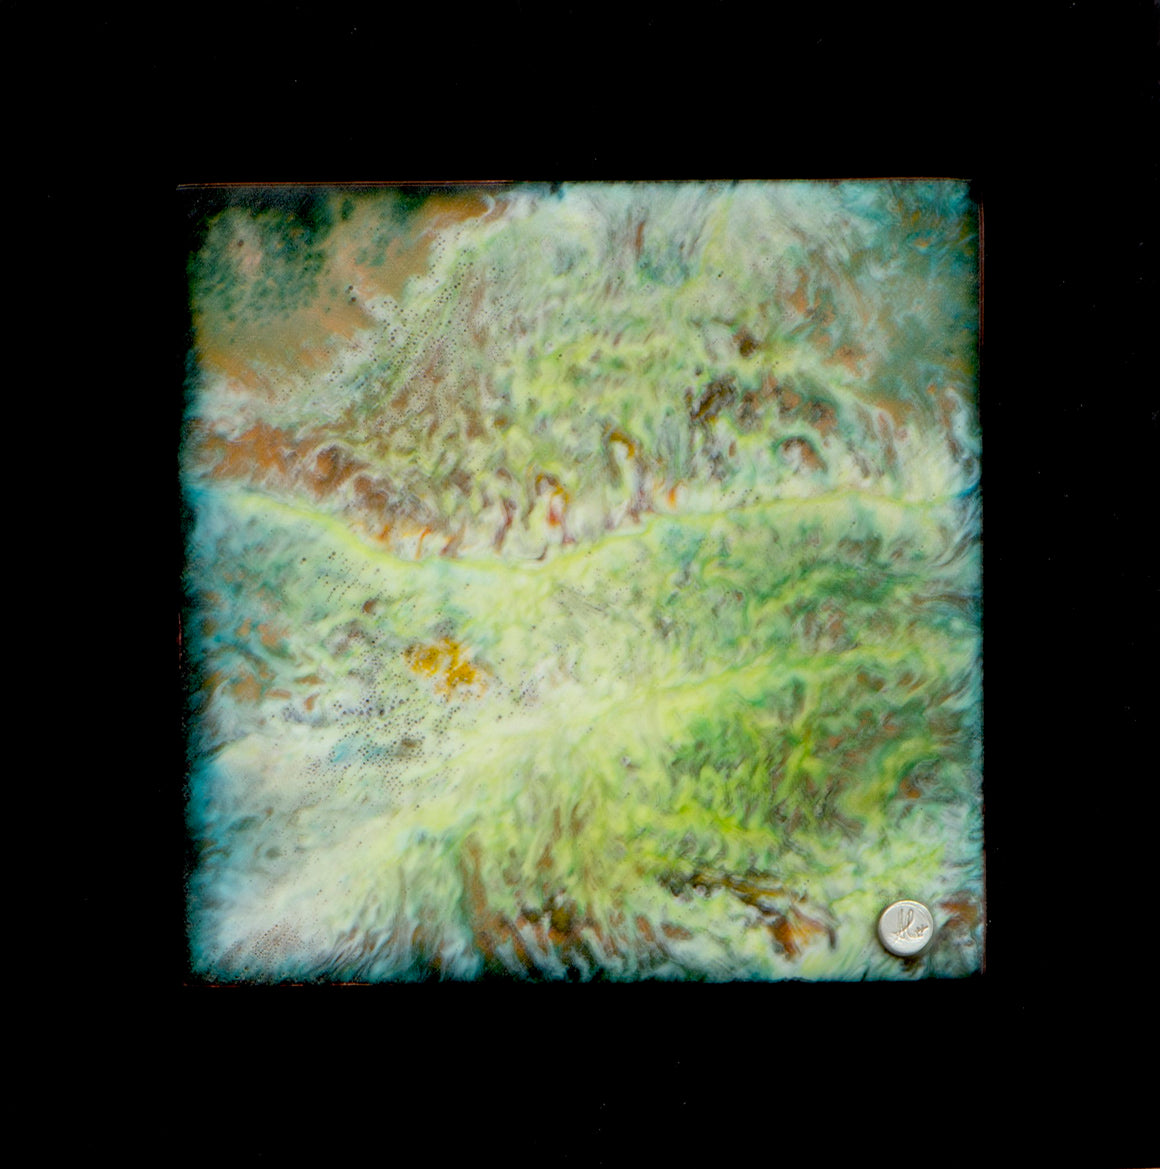 Garden 2.0  4 x 4 enamel  mounted on a 6x6 pvc board